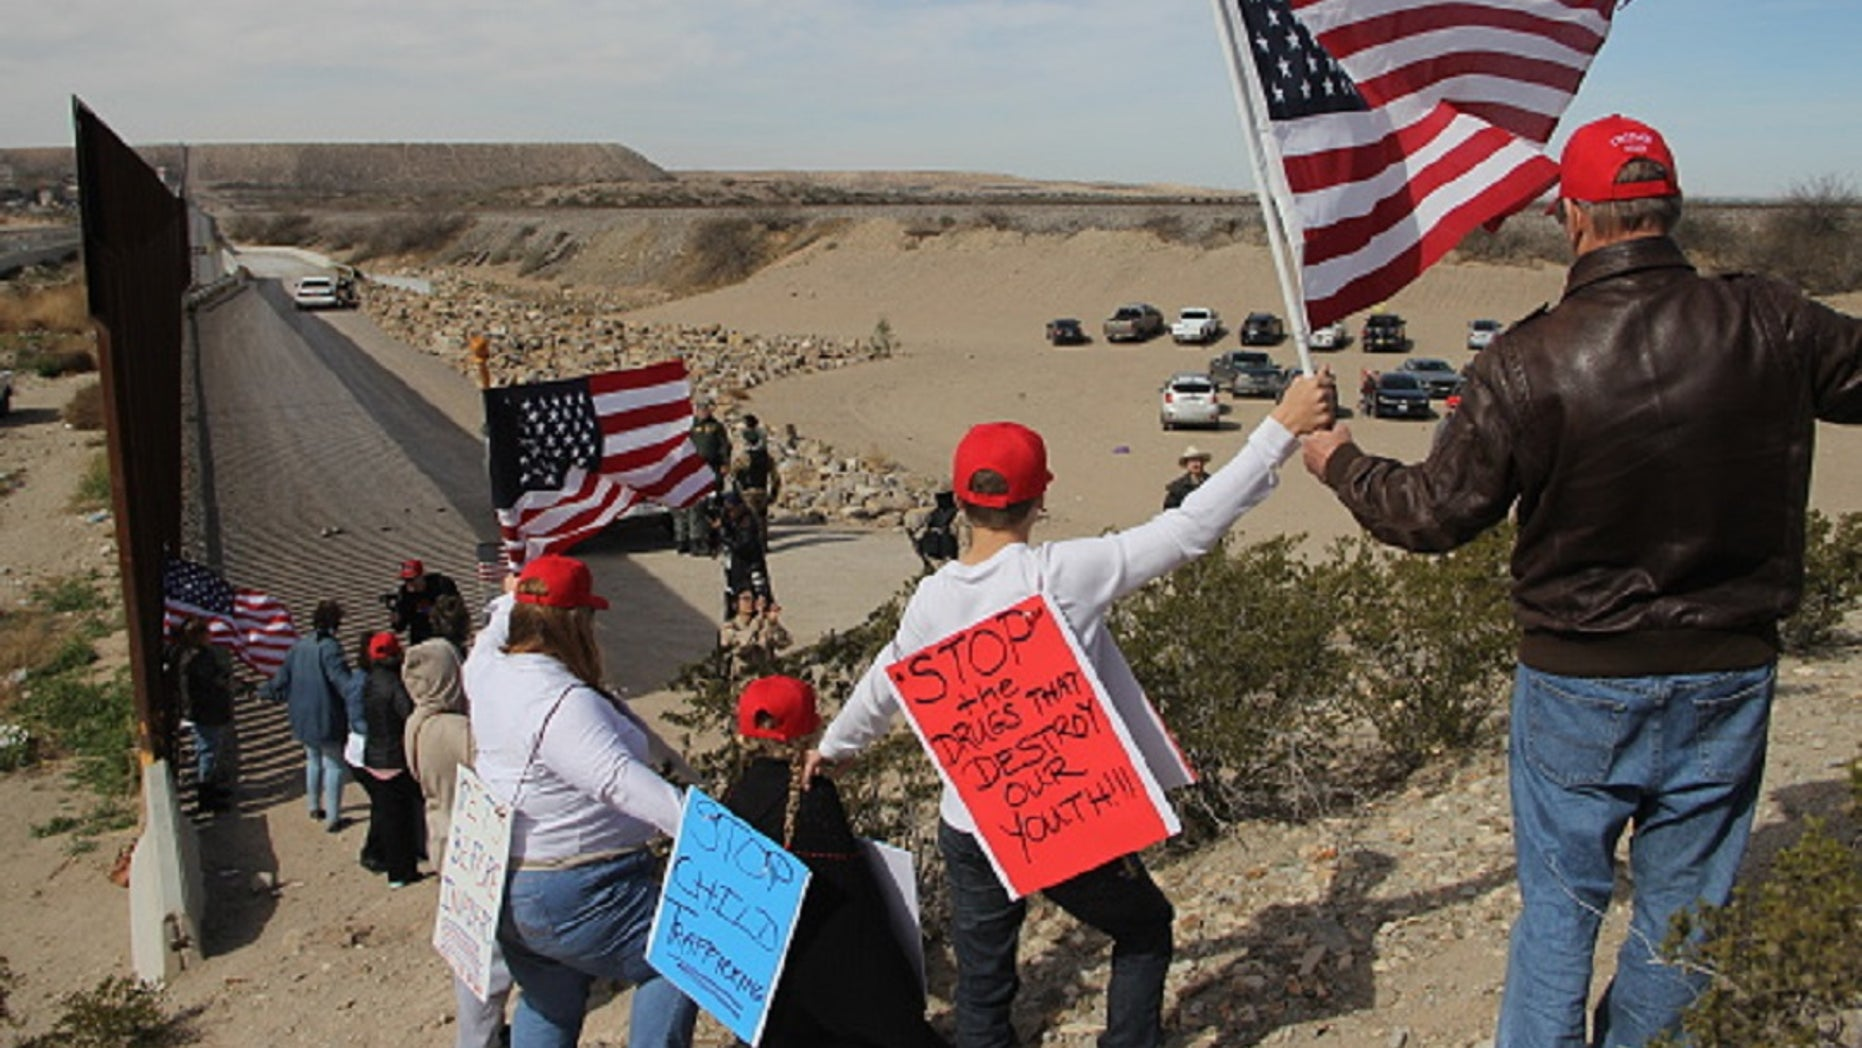 Trump supporters form human wall at southern New Mexico border